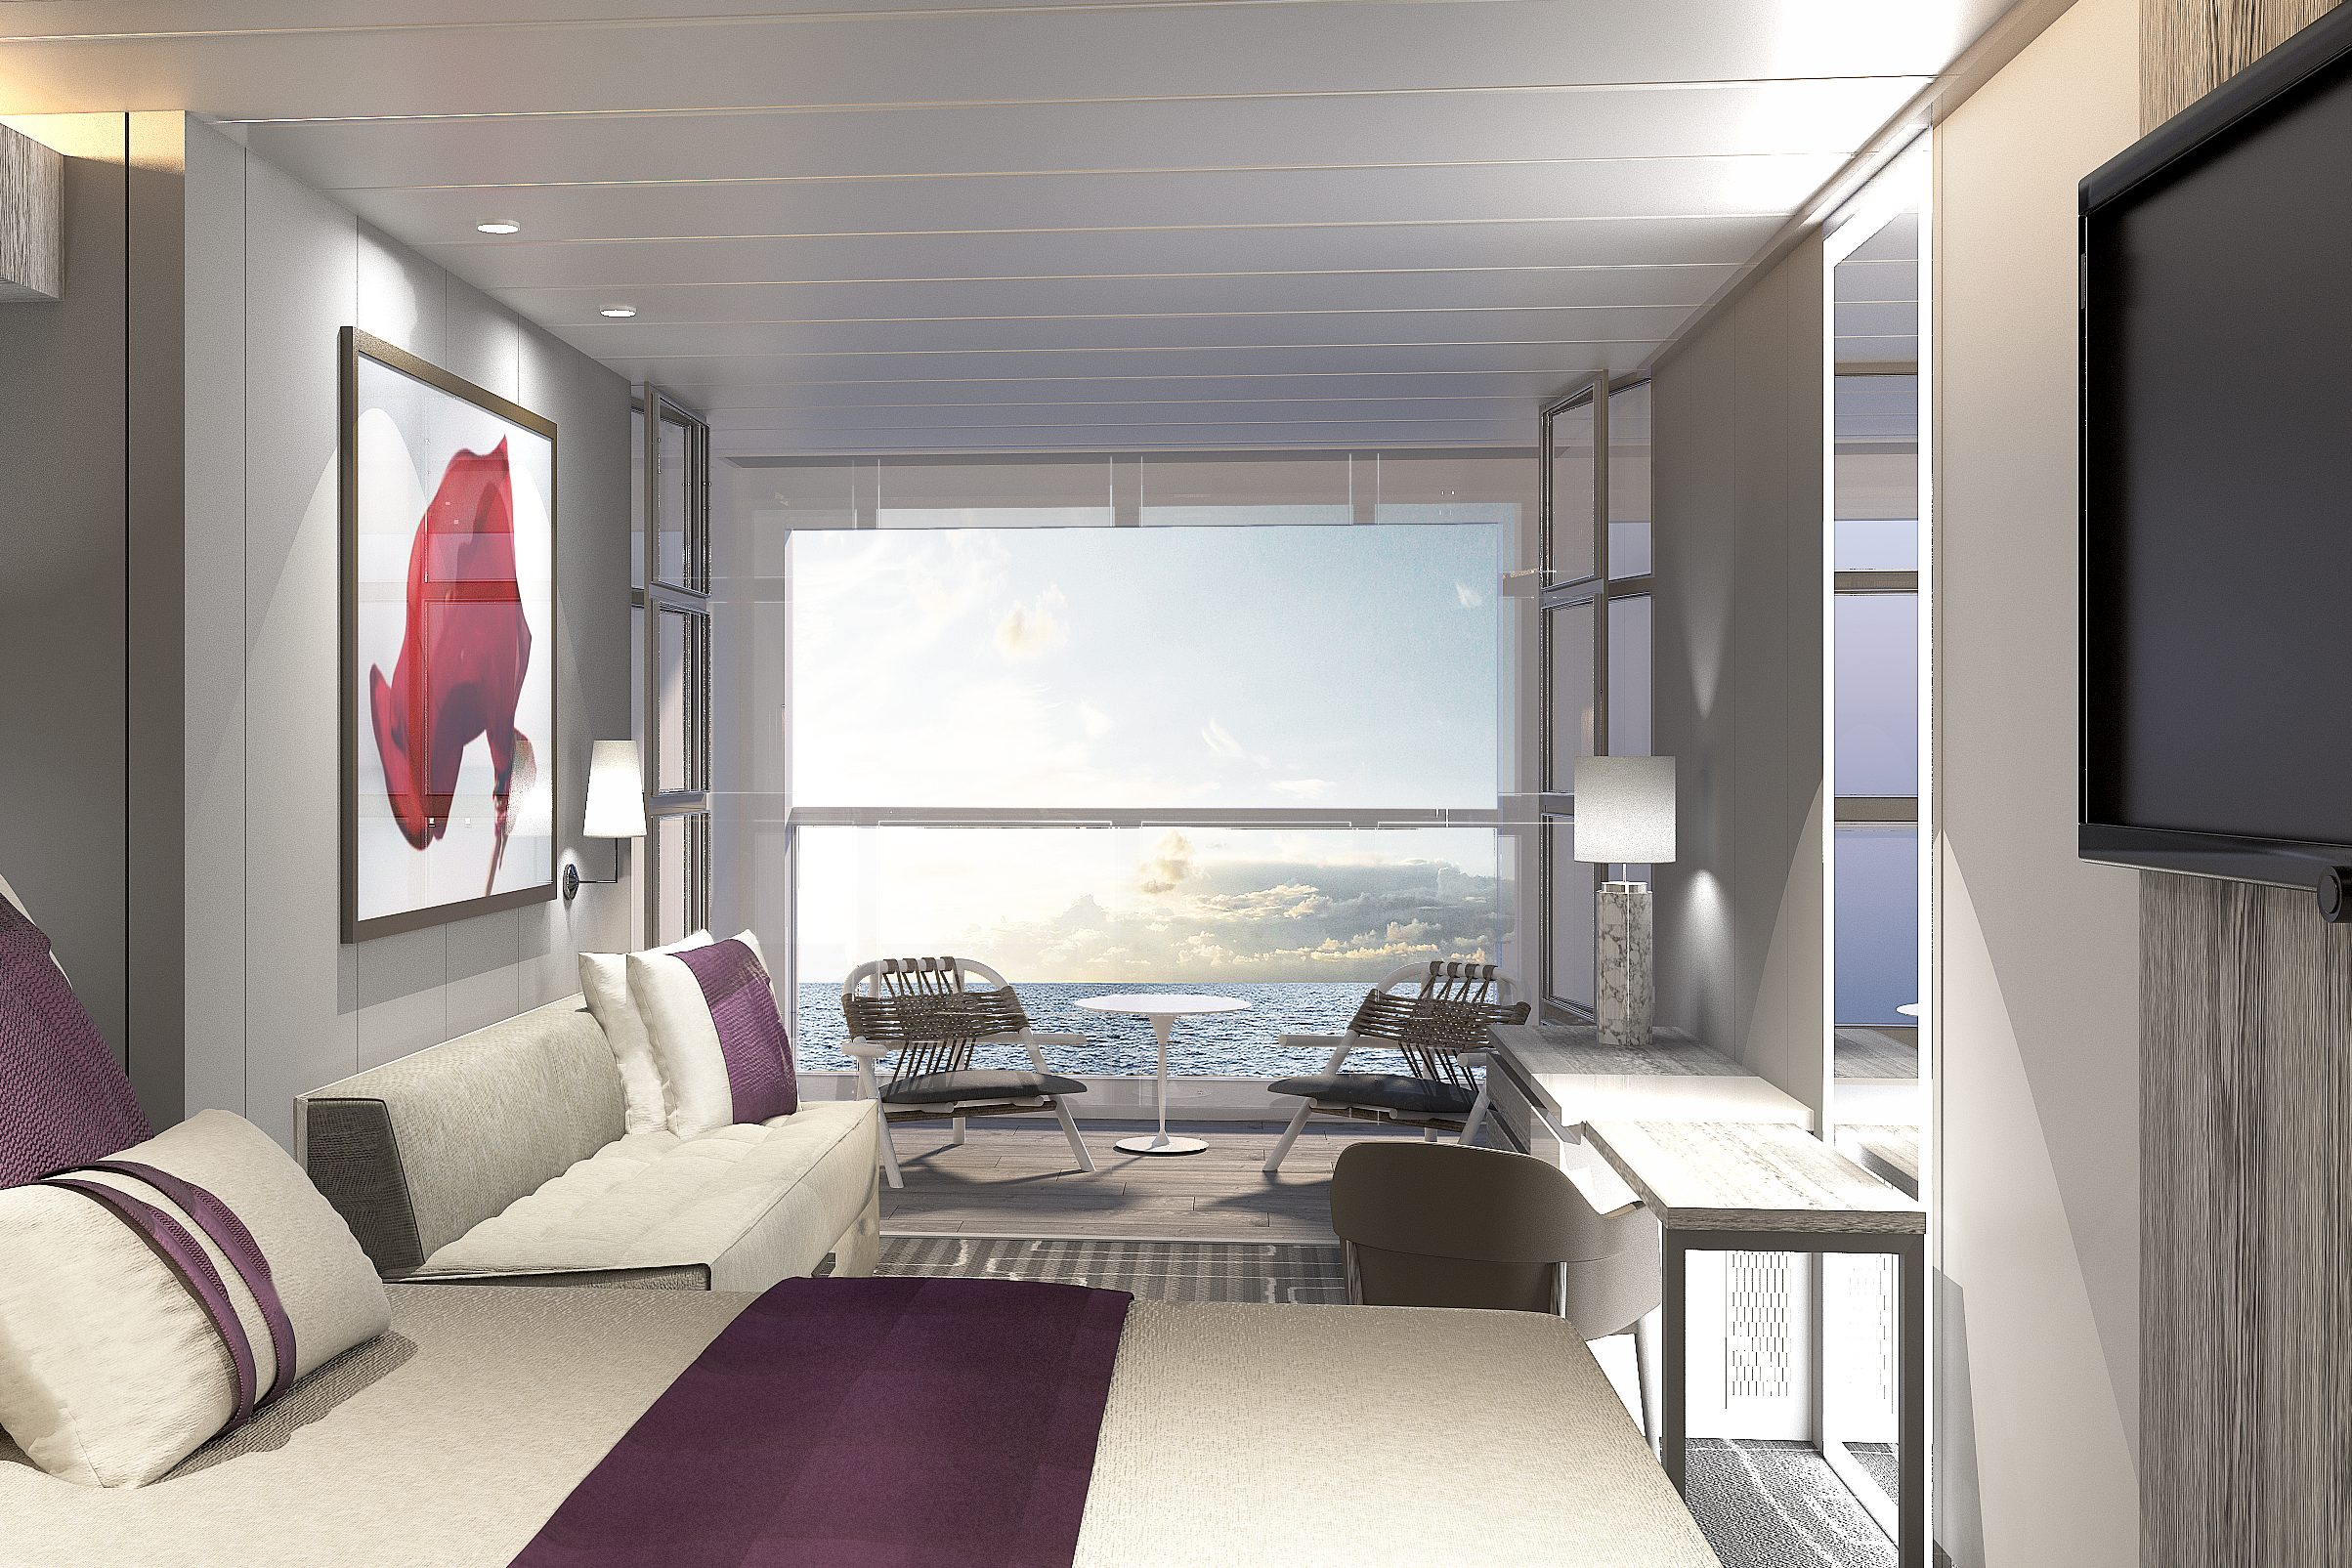 Celebrity infinity cabin images